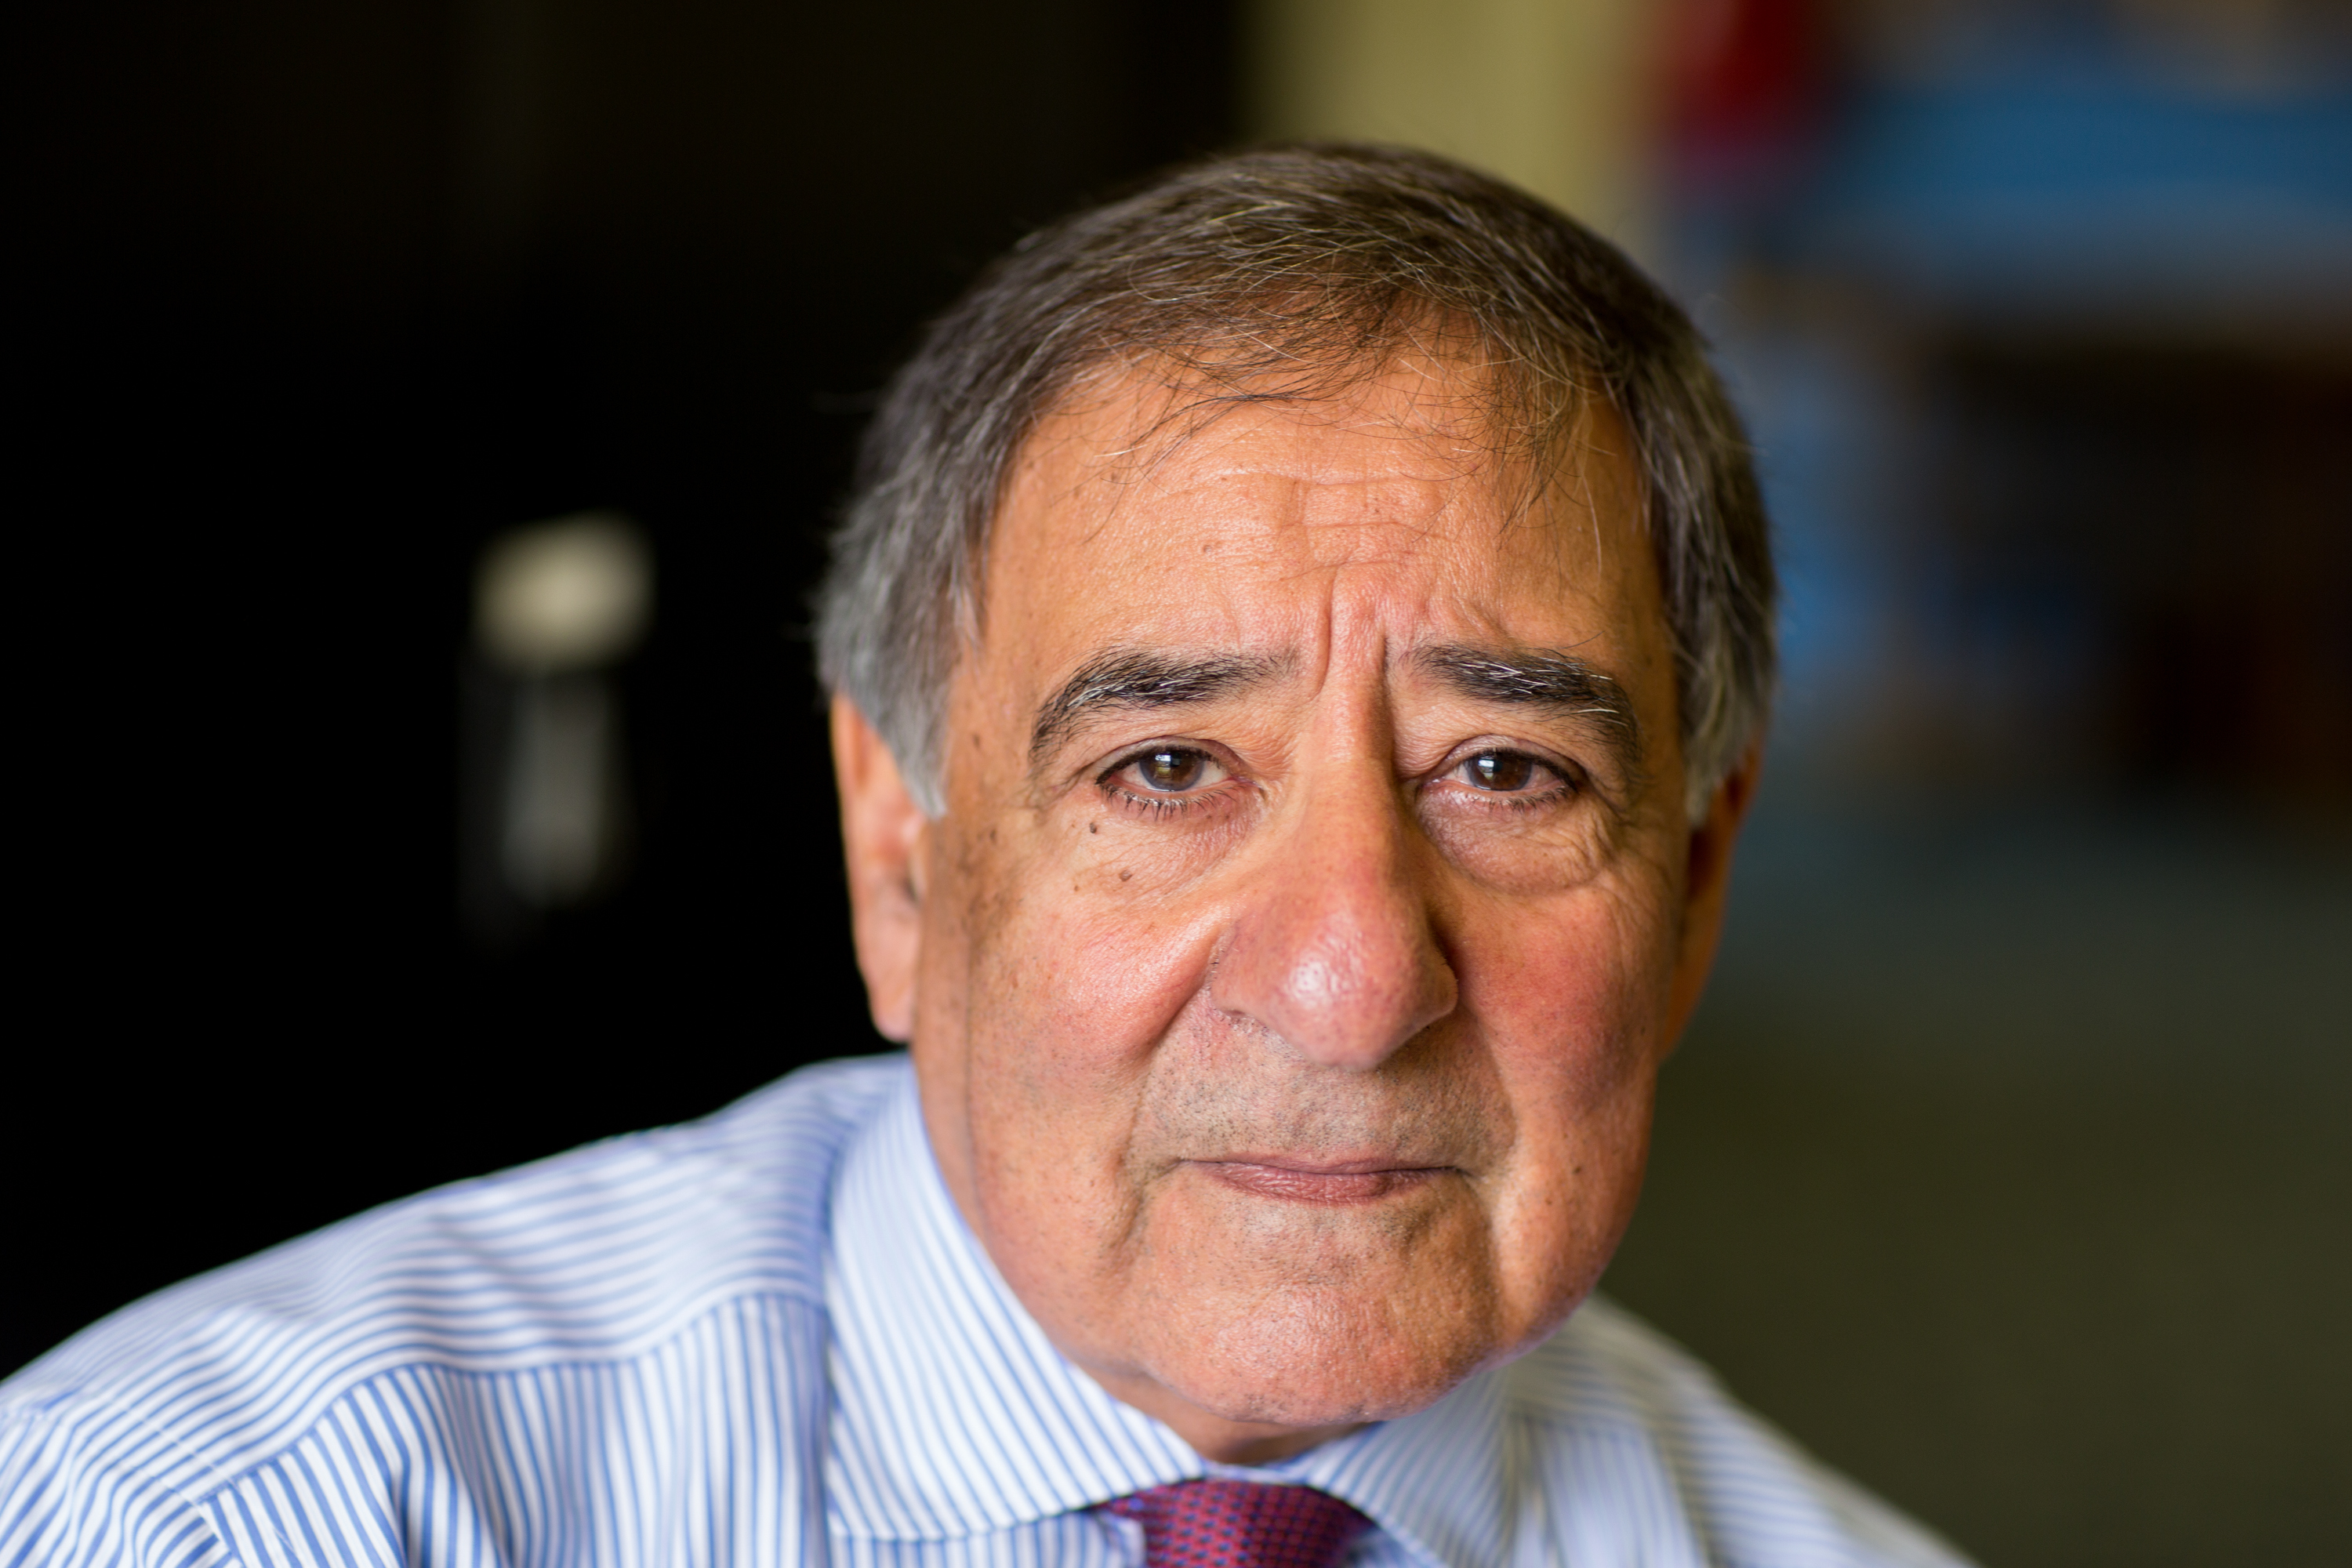 Leon Panetta at the Panetta Institute in Seaside, CA on July 31, 2015.